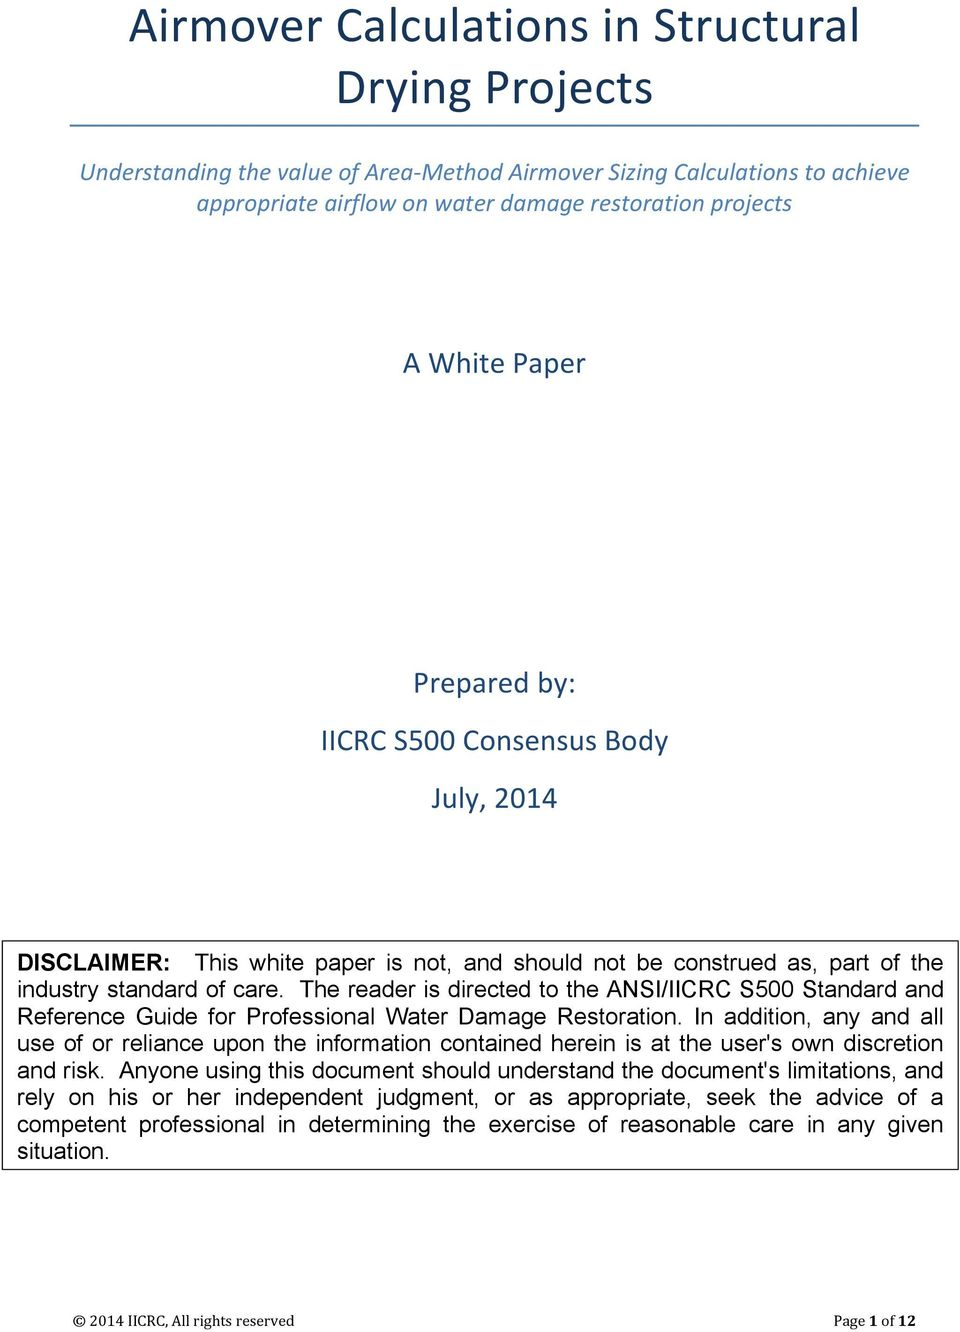 The reader is directed to the ANSI/IICRC S500 Standard and Reference Guide for Professional Water Damage Restoration.